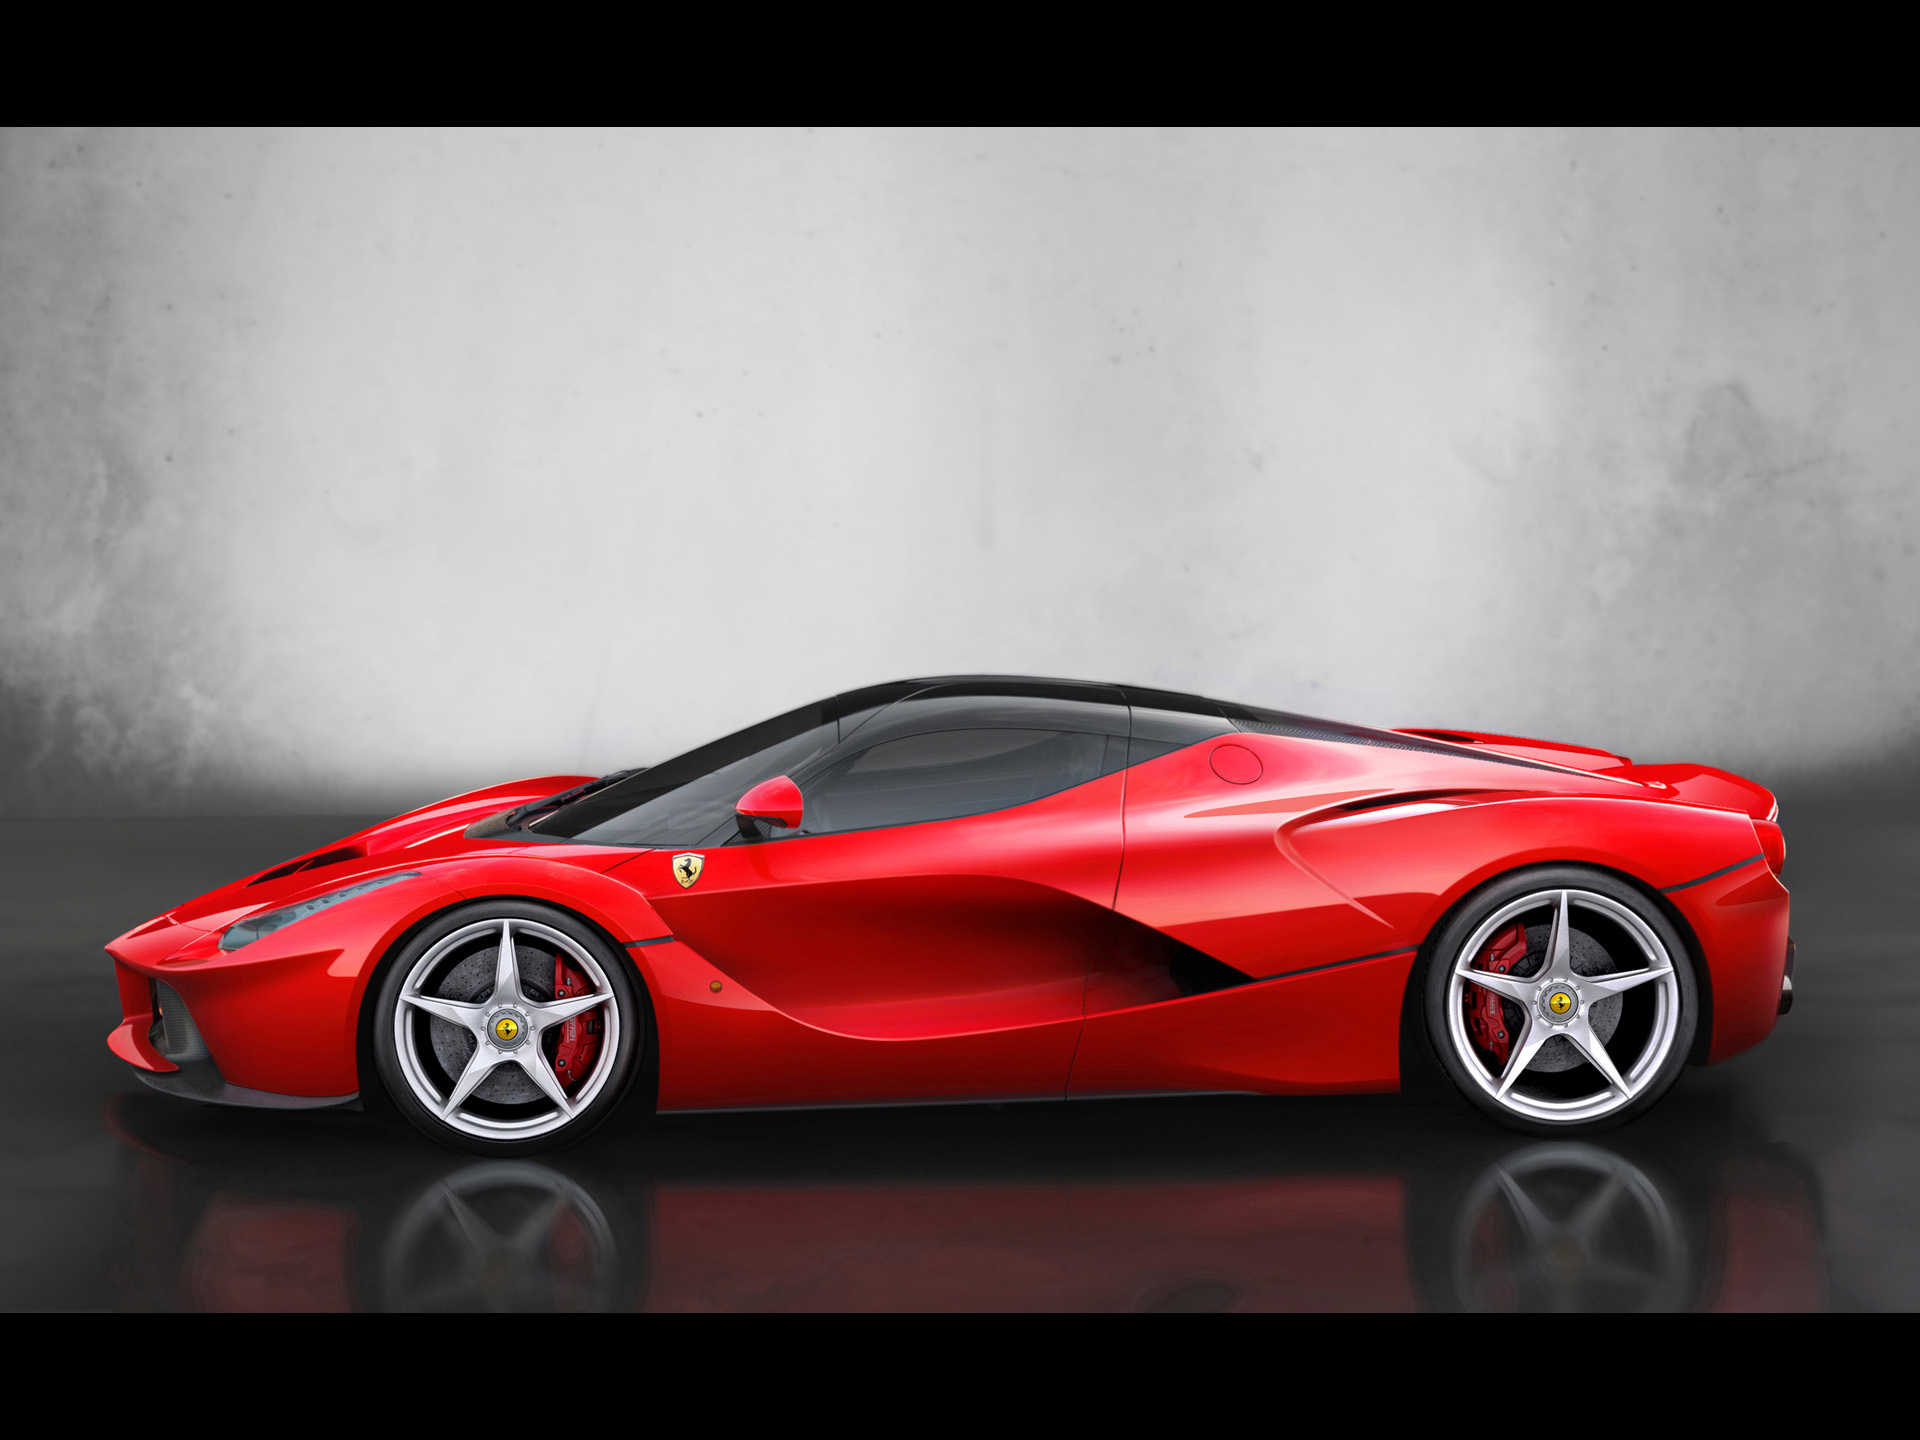 click to free download the wallpaper--Super Car Post of Red Ferrari, Stopping on Black Background, Combine an Impressive Look 1920X1440 free wallpaper download